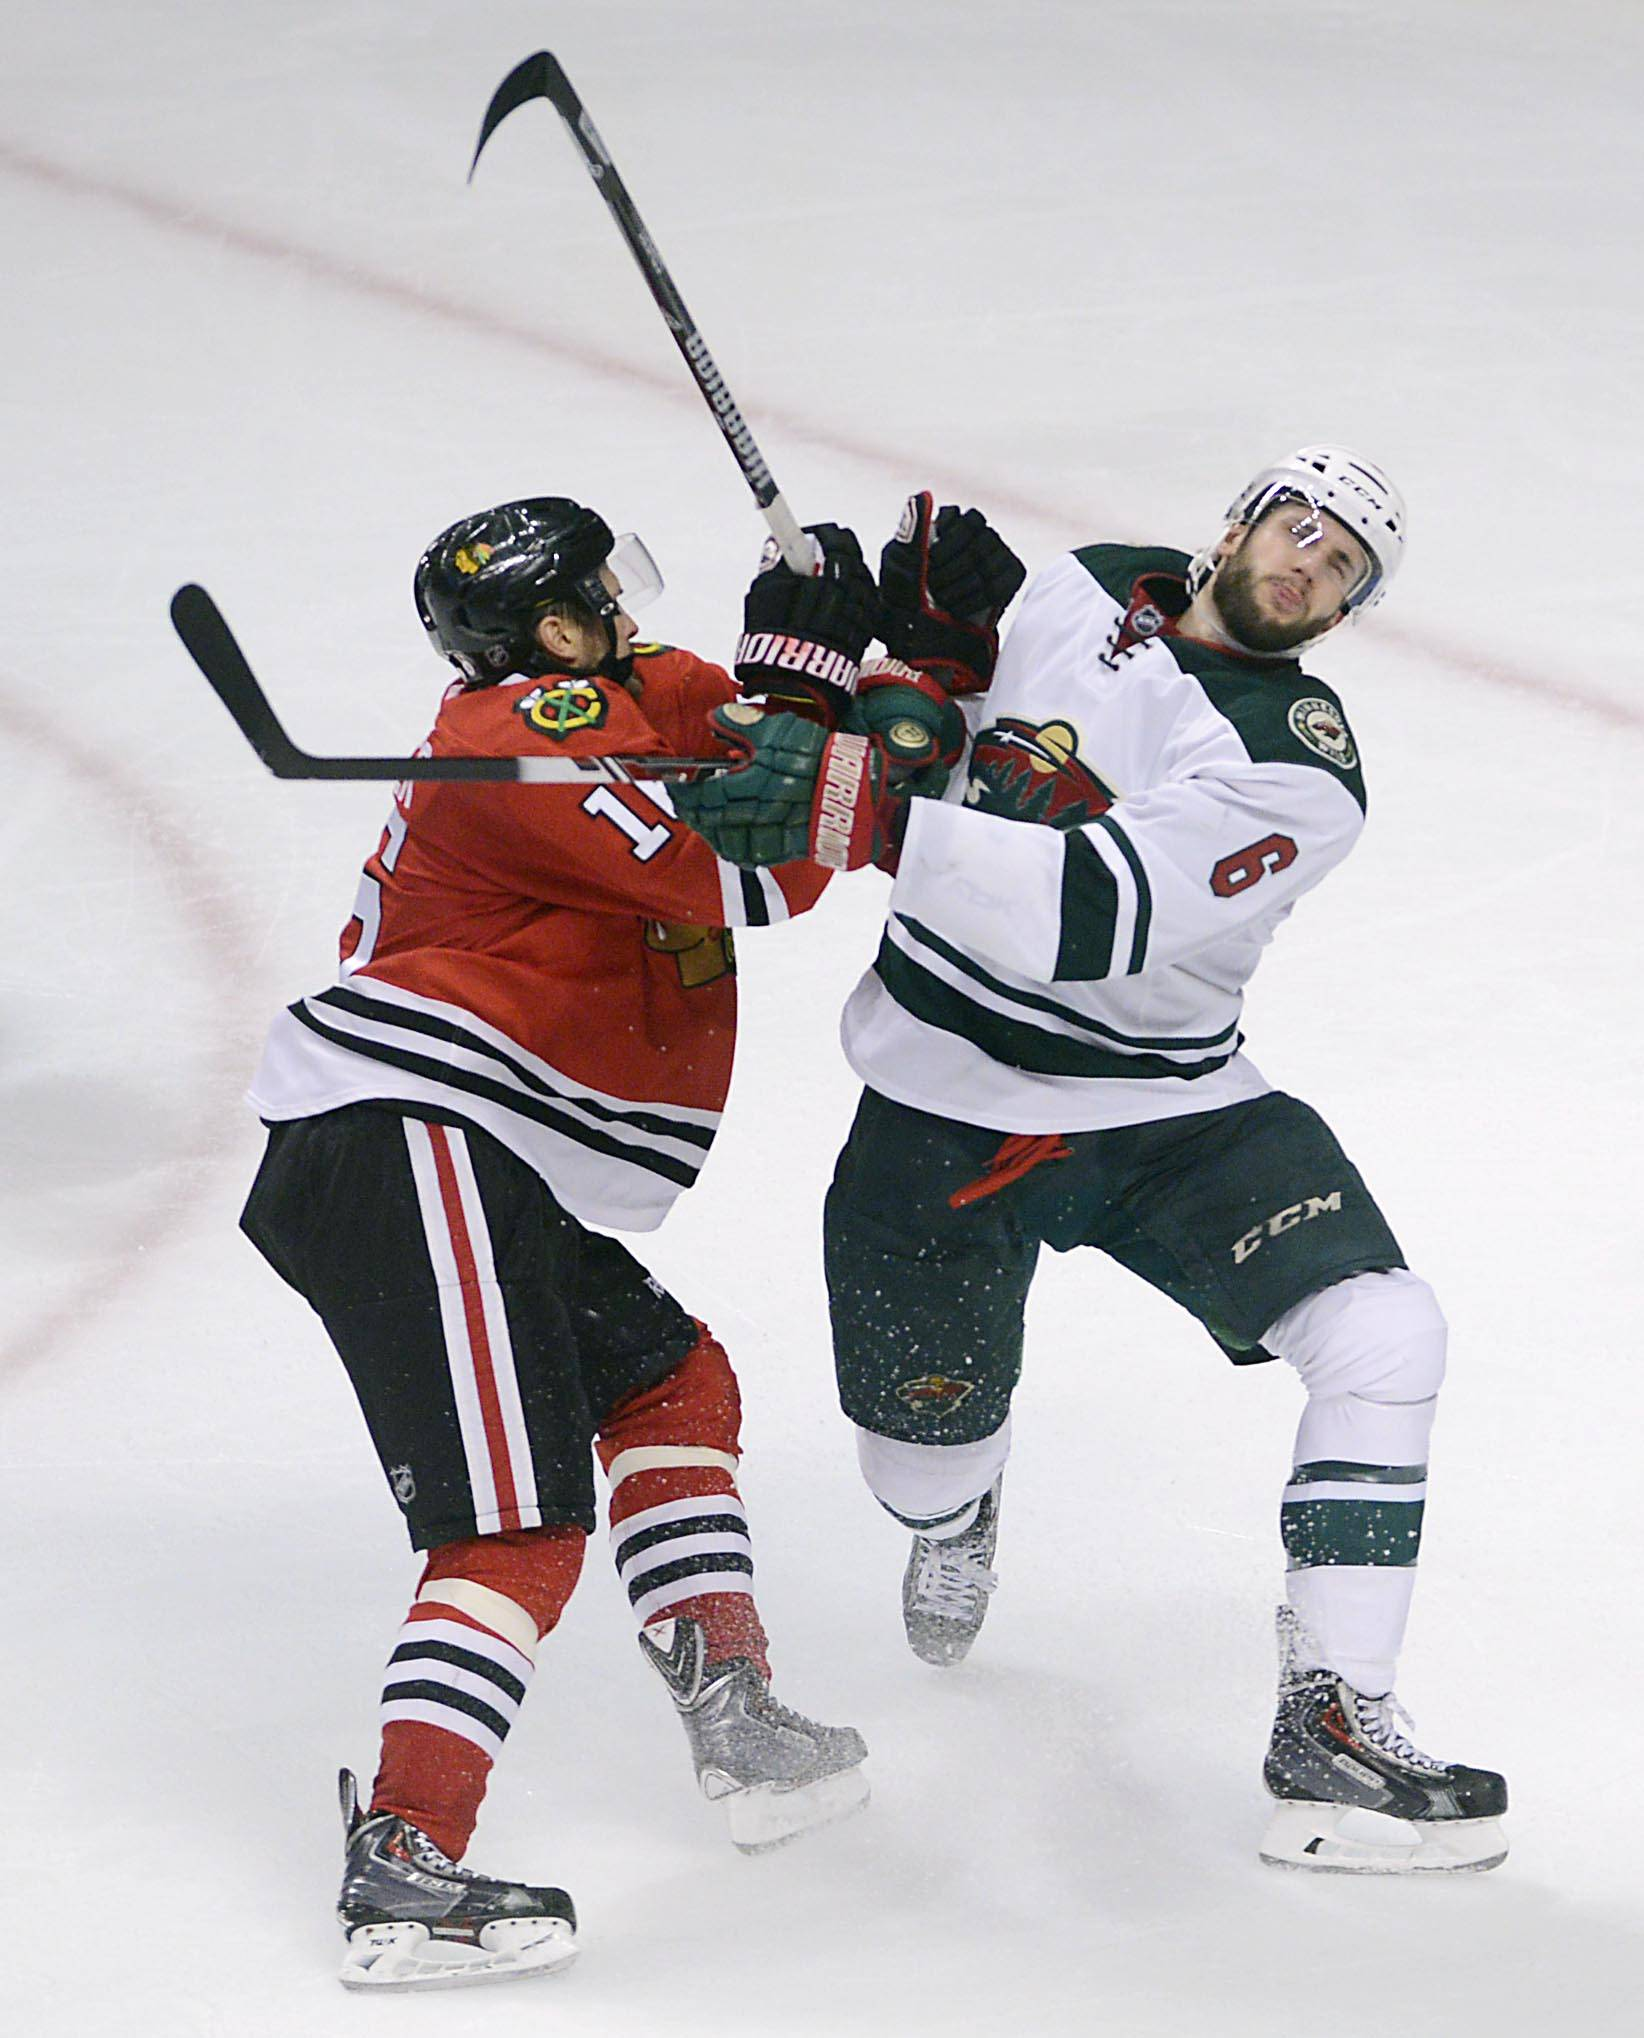 Chicago Blackhawks center Marcus Kruger hits Minnesota Wild defenseman Marco Scandella.